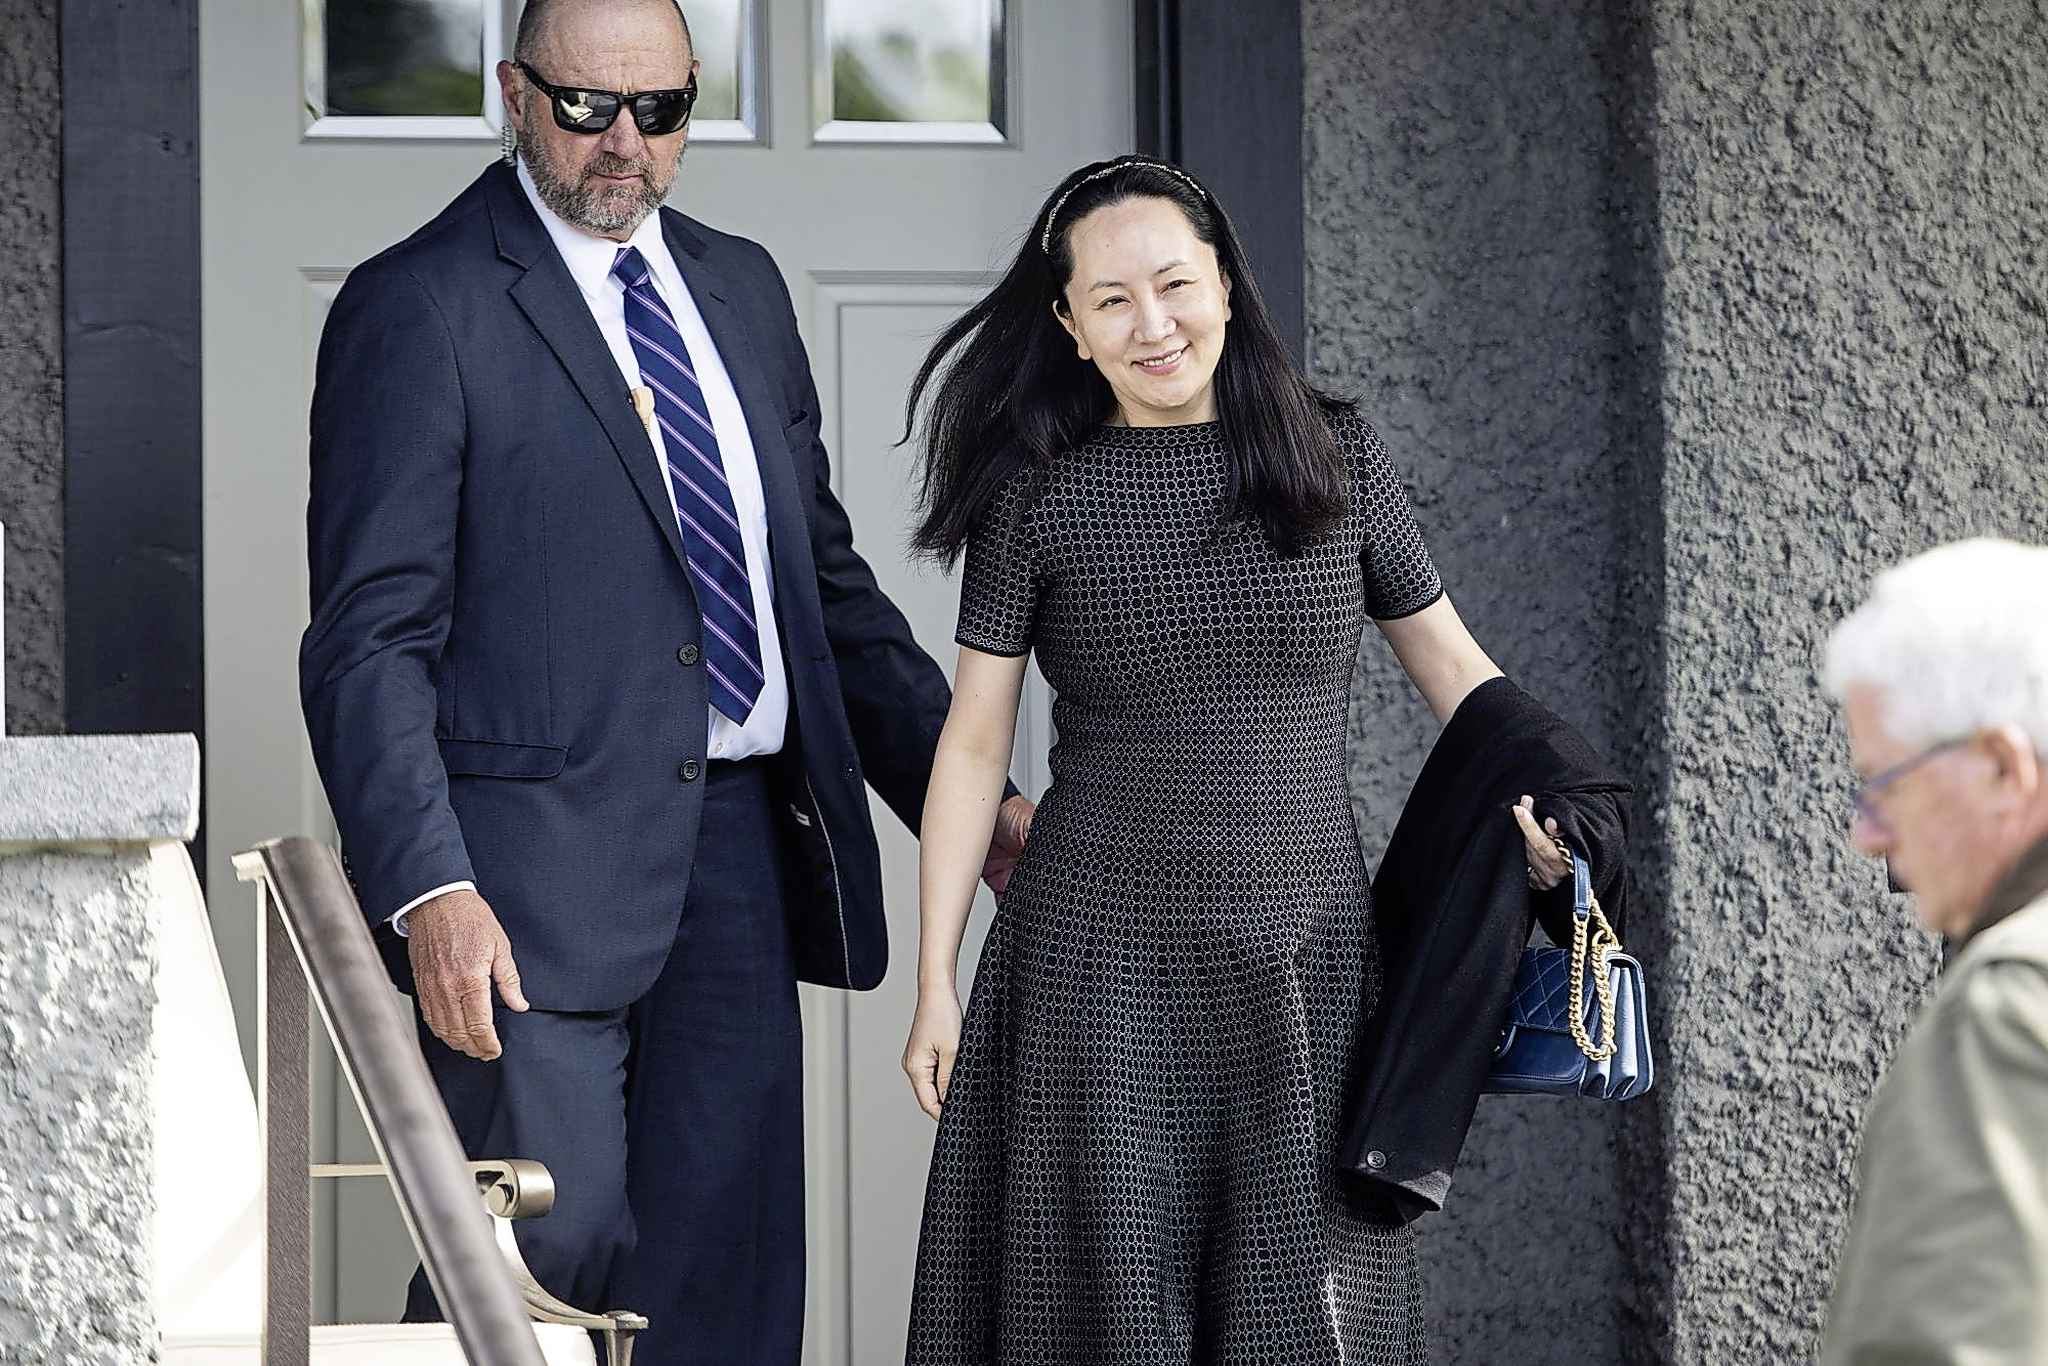 Meng Wanzhou, chief financial officer of Huawei Technologies Co., leaves her house for a hearing at the Supreme Court in Vancouver in May. (Jimmy Jeong / Bloomberg)